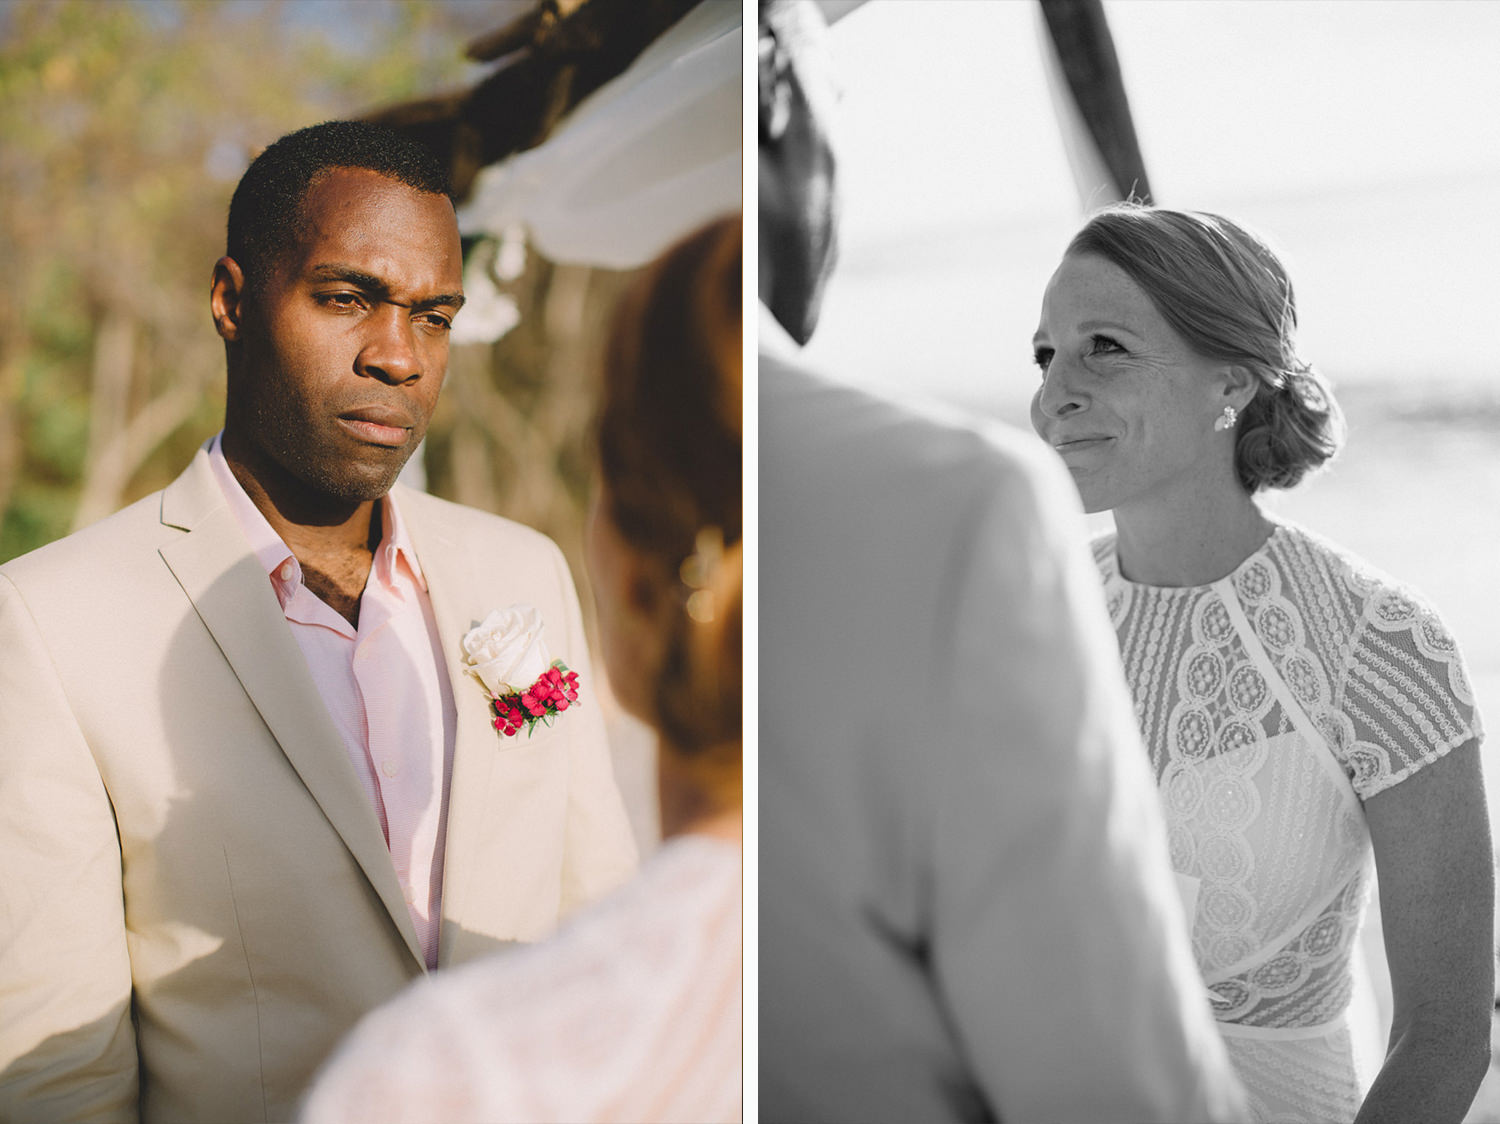 Megan and Aquil getting married in Nicaragua